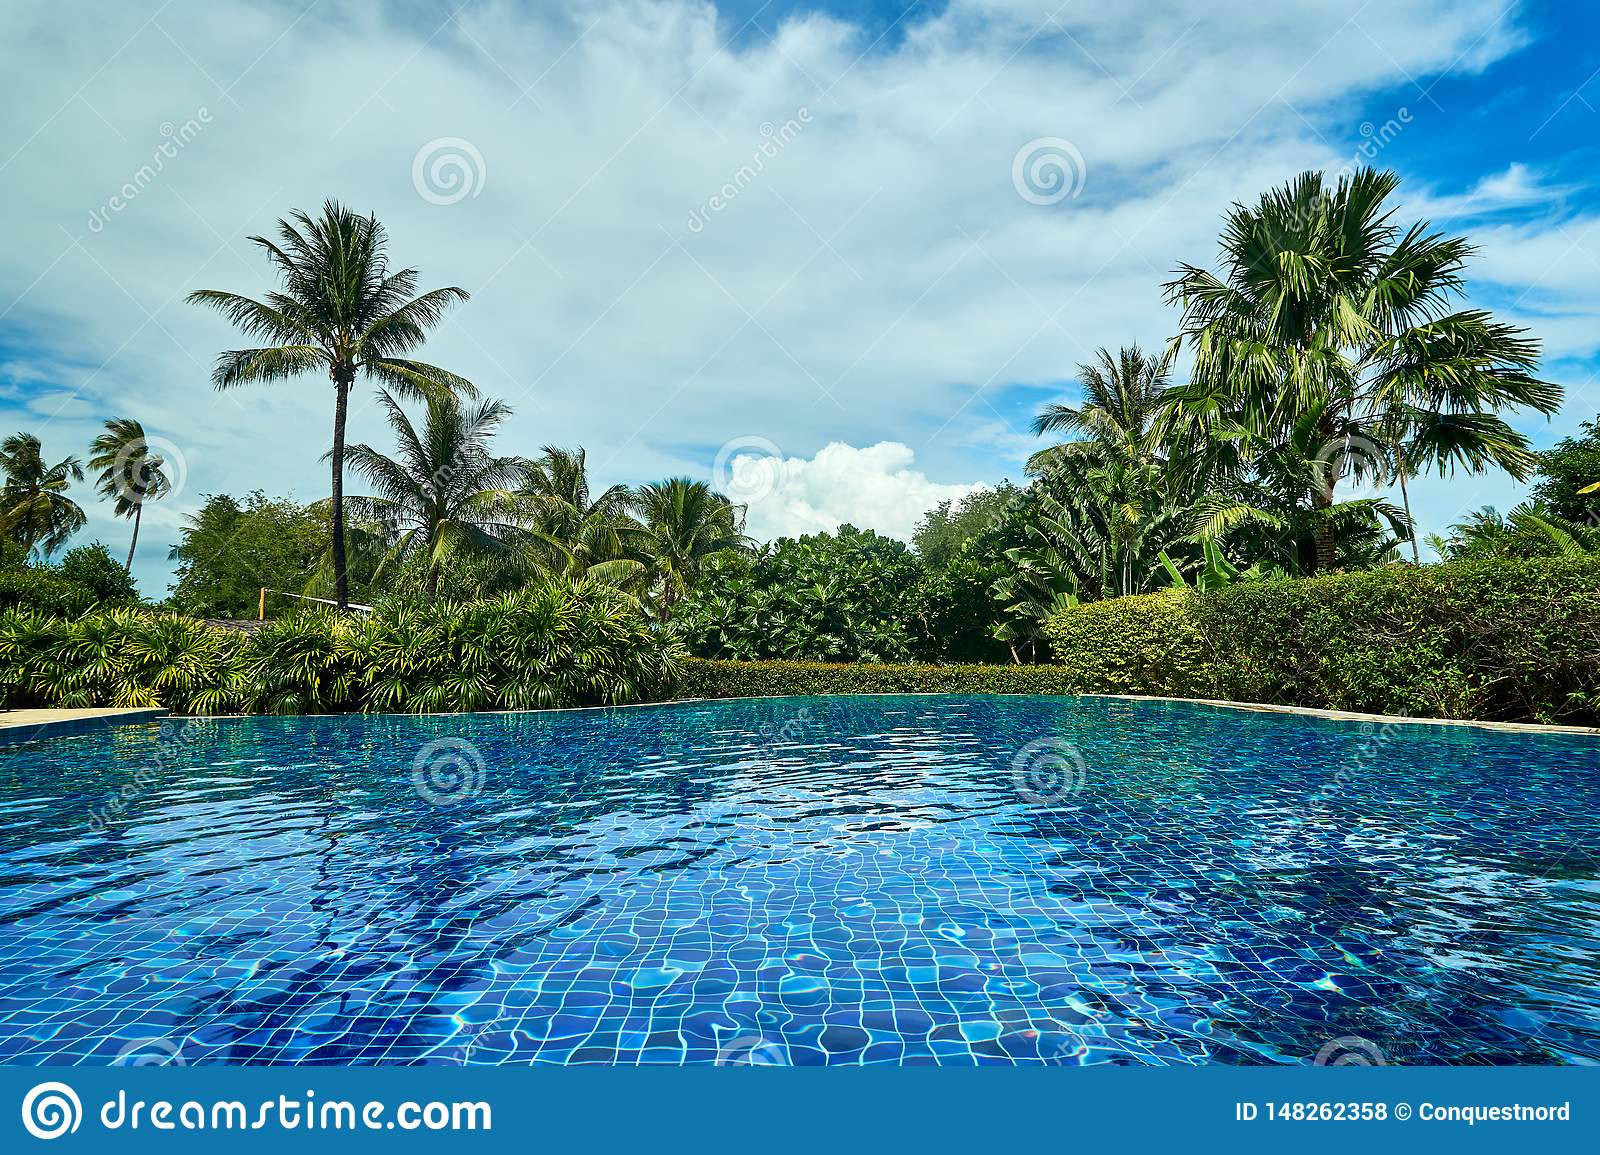 Outstandidng view of Swimming pool in thailand